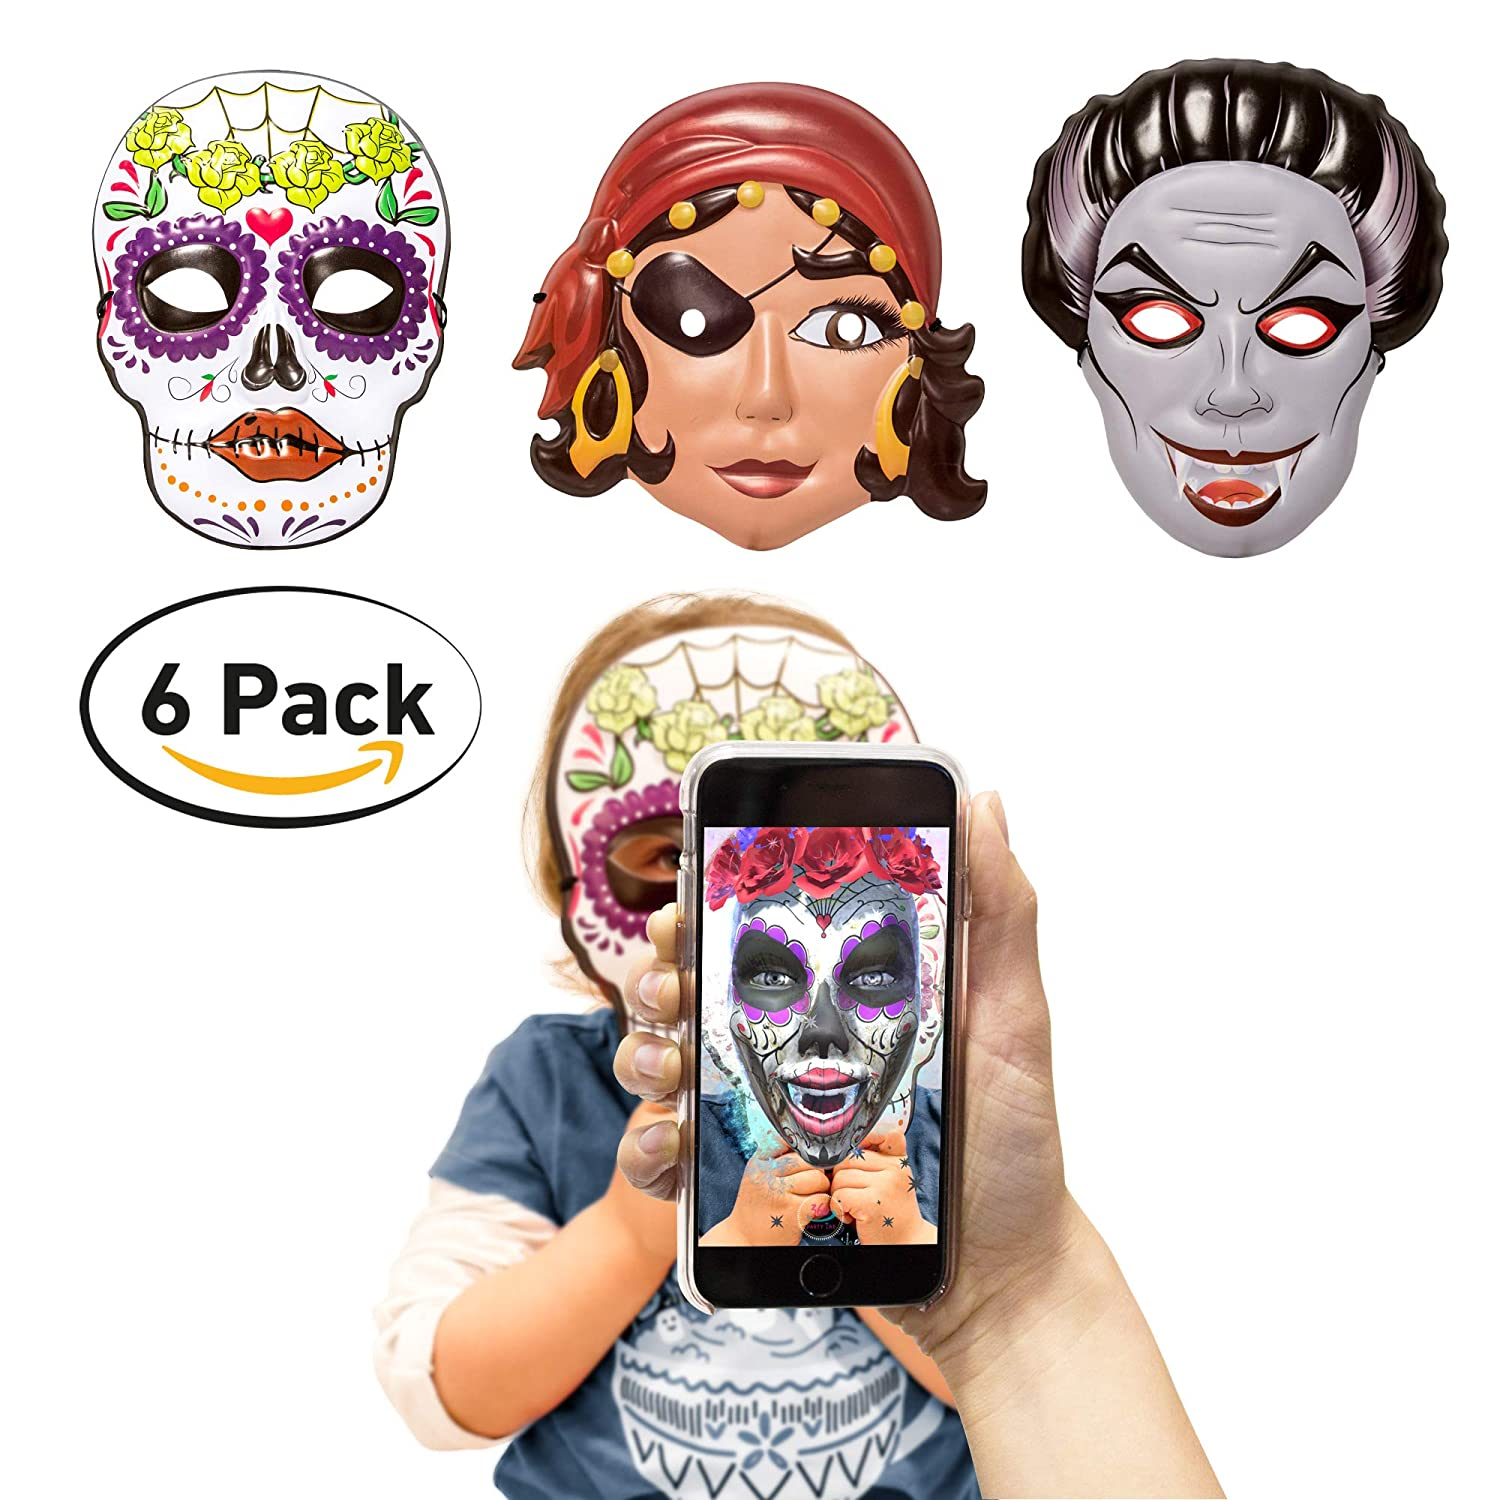 360 Party Lab Kids Girl Masks Augmented Reality 6 Pack 2 Pirate 2 Vampire 2 Katrina Skull